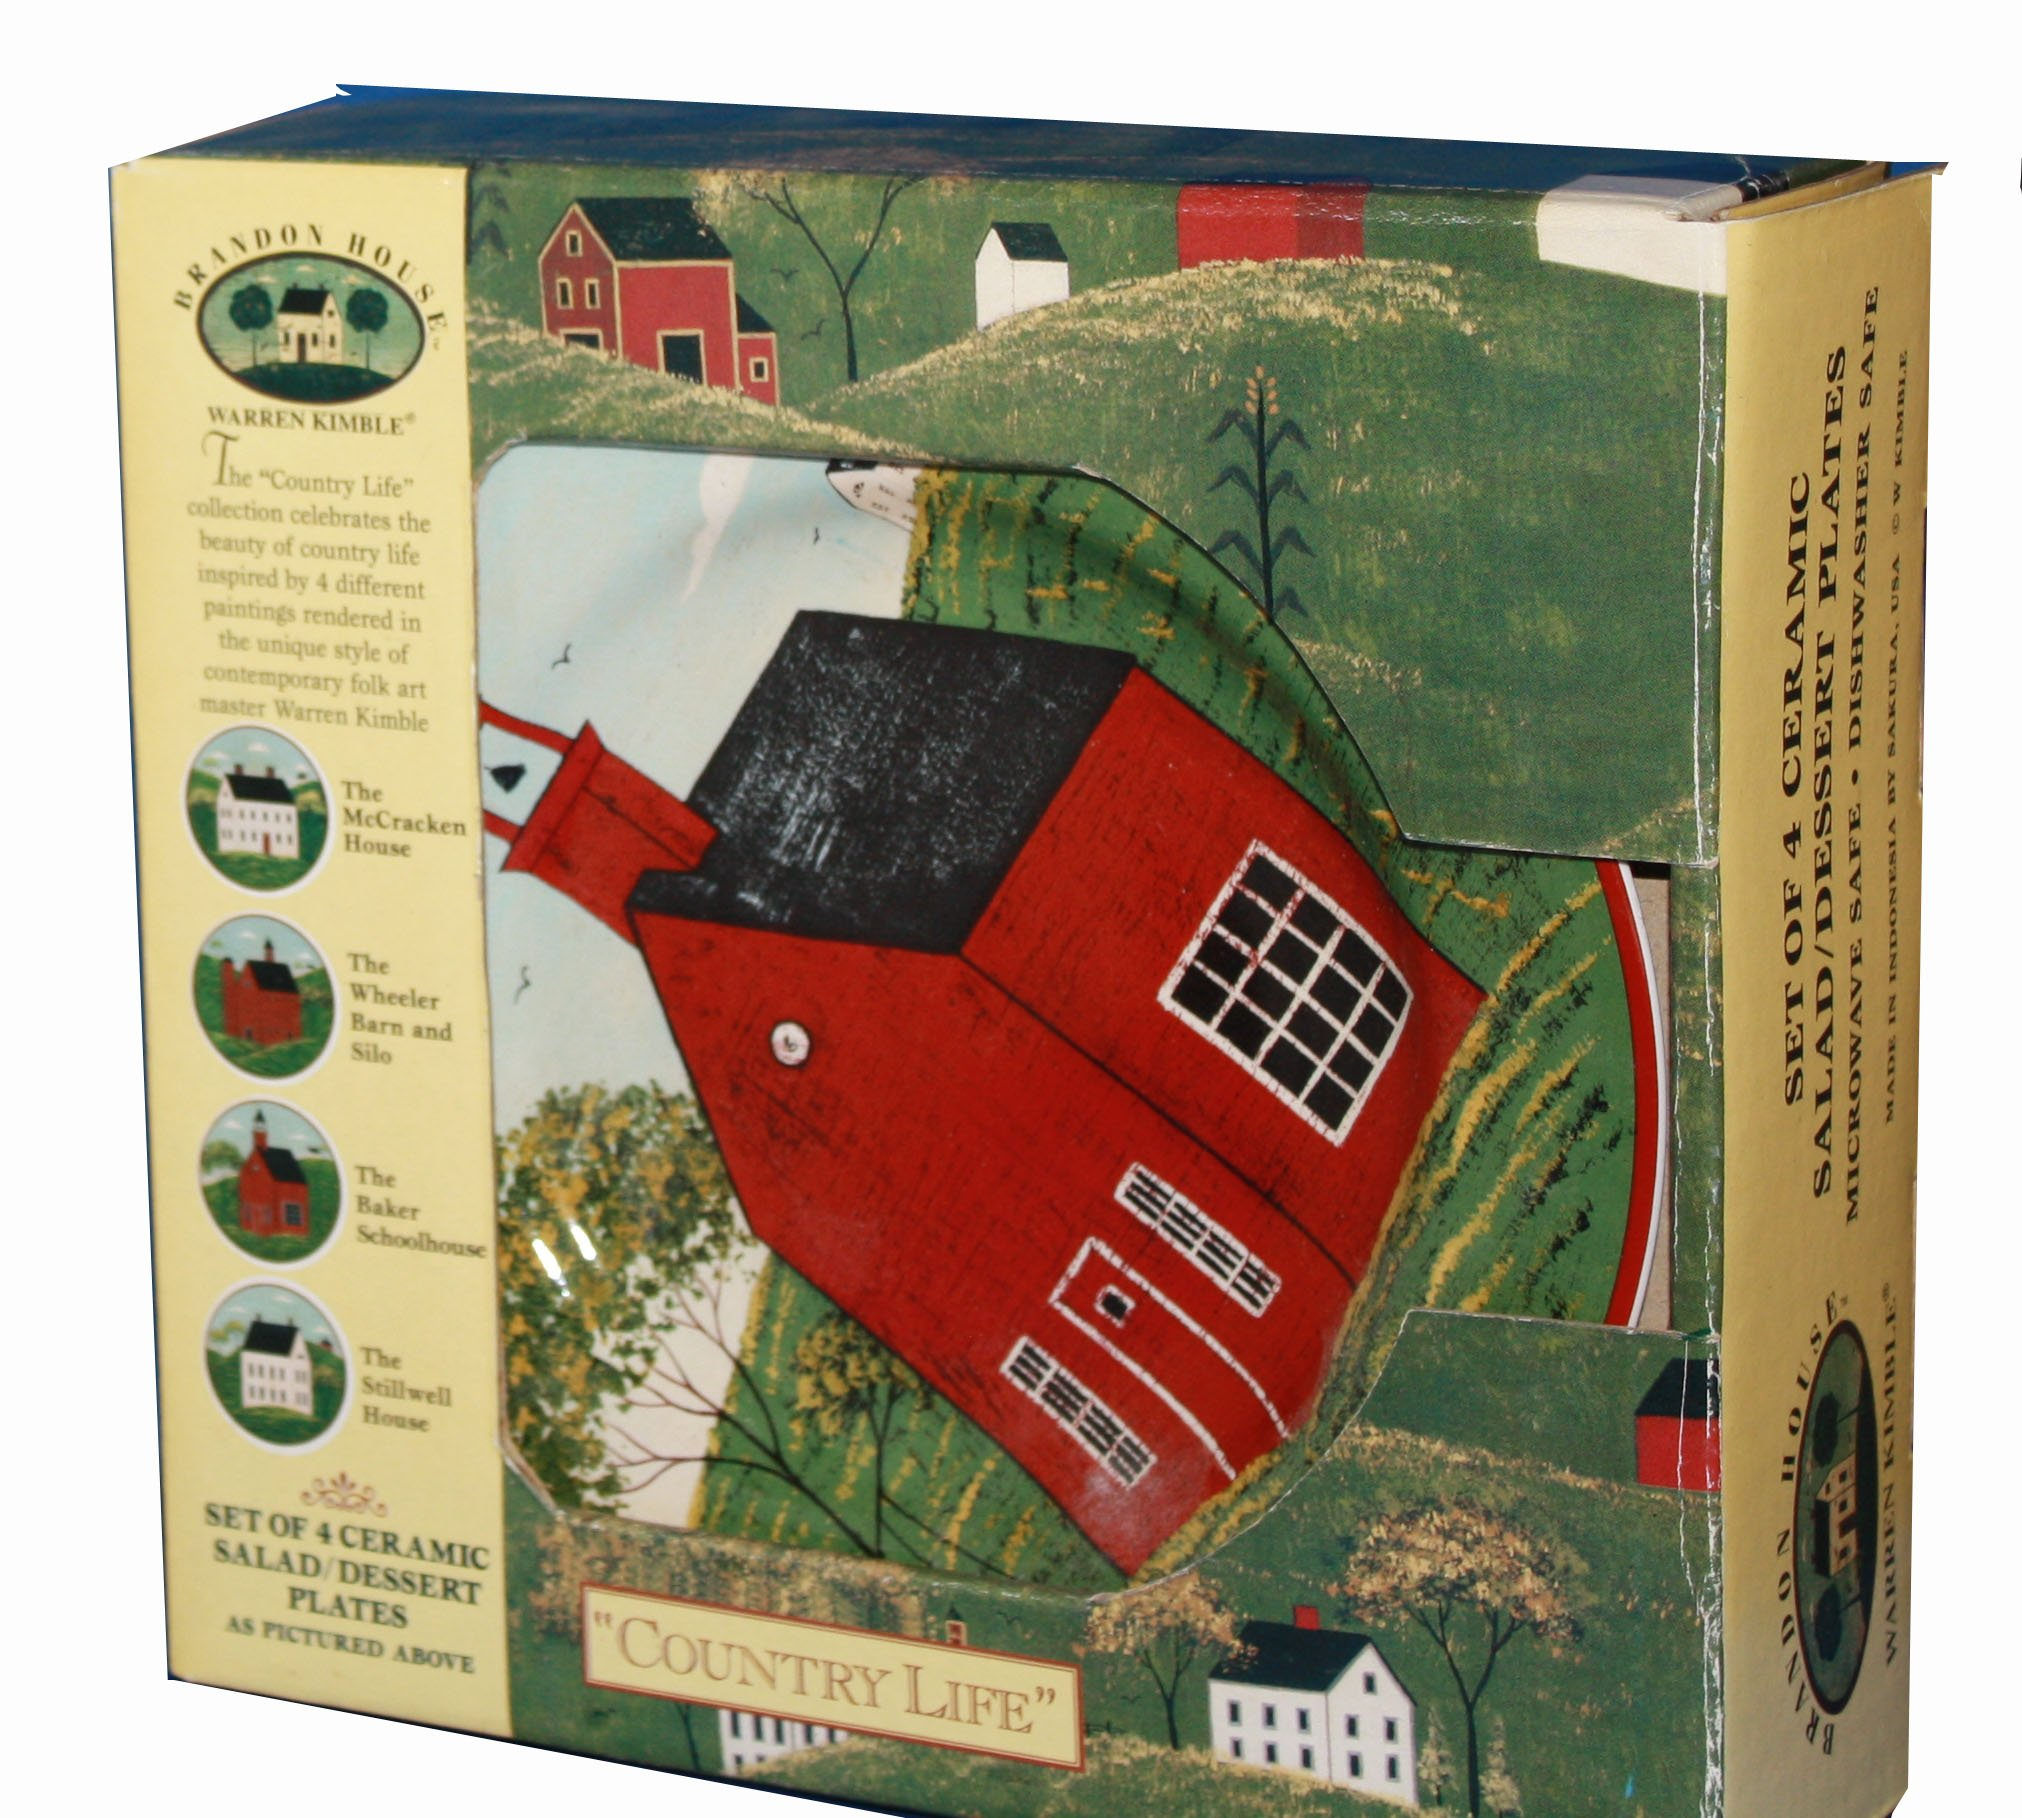 Brandon House by Folk Art Master Warren Kimble - Country Life Cereamic Salad Plates Set of Four Plates Featuring Historic Homes Including the McCracken House Dating back to 1789, The Wheeler Barn and Silo in Vermont, The Baker Schoolhouse and the Stillwel